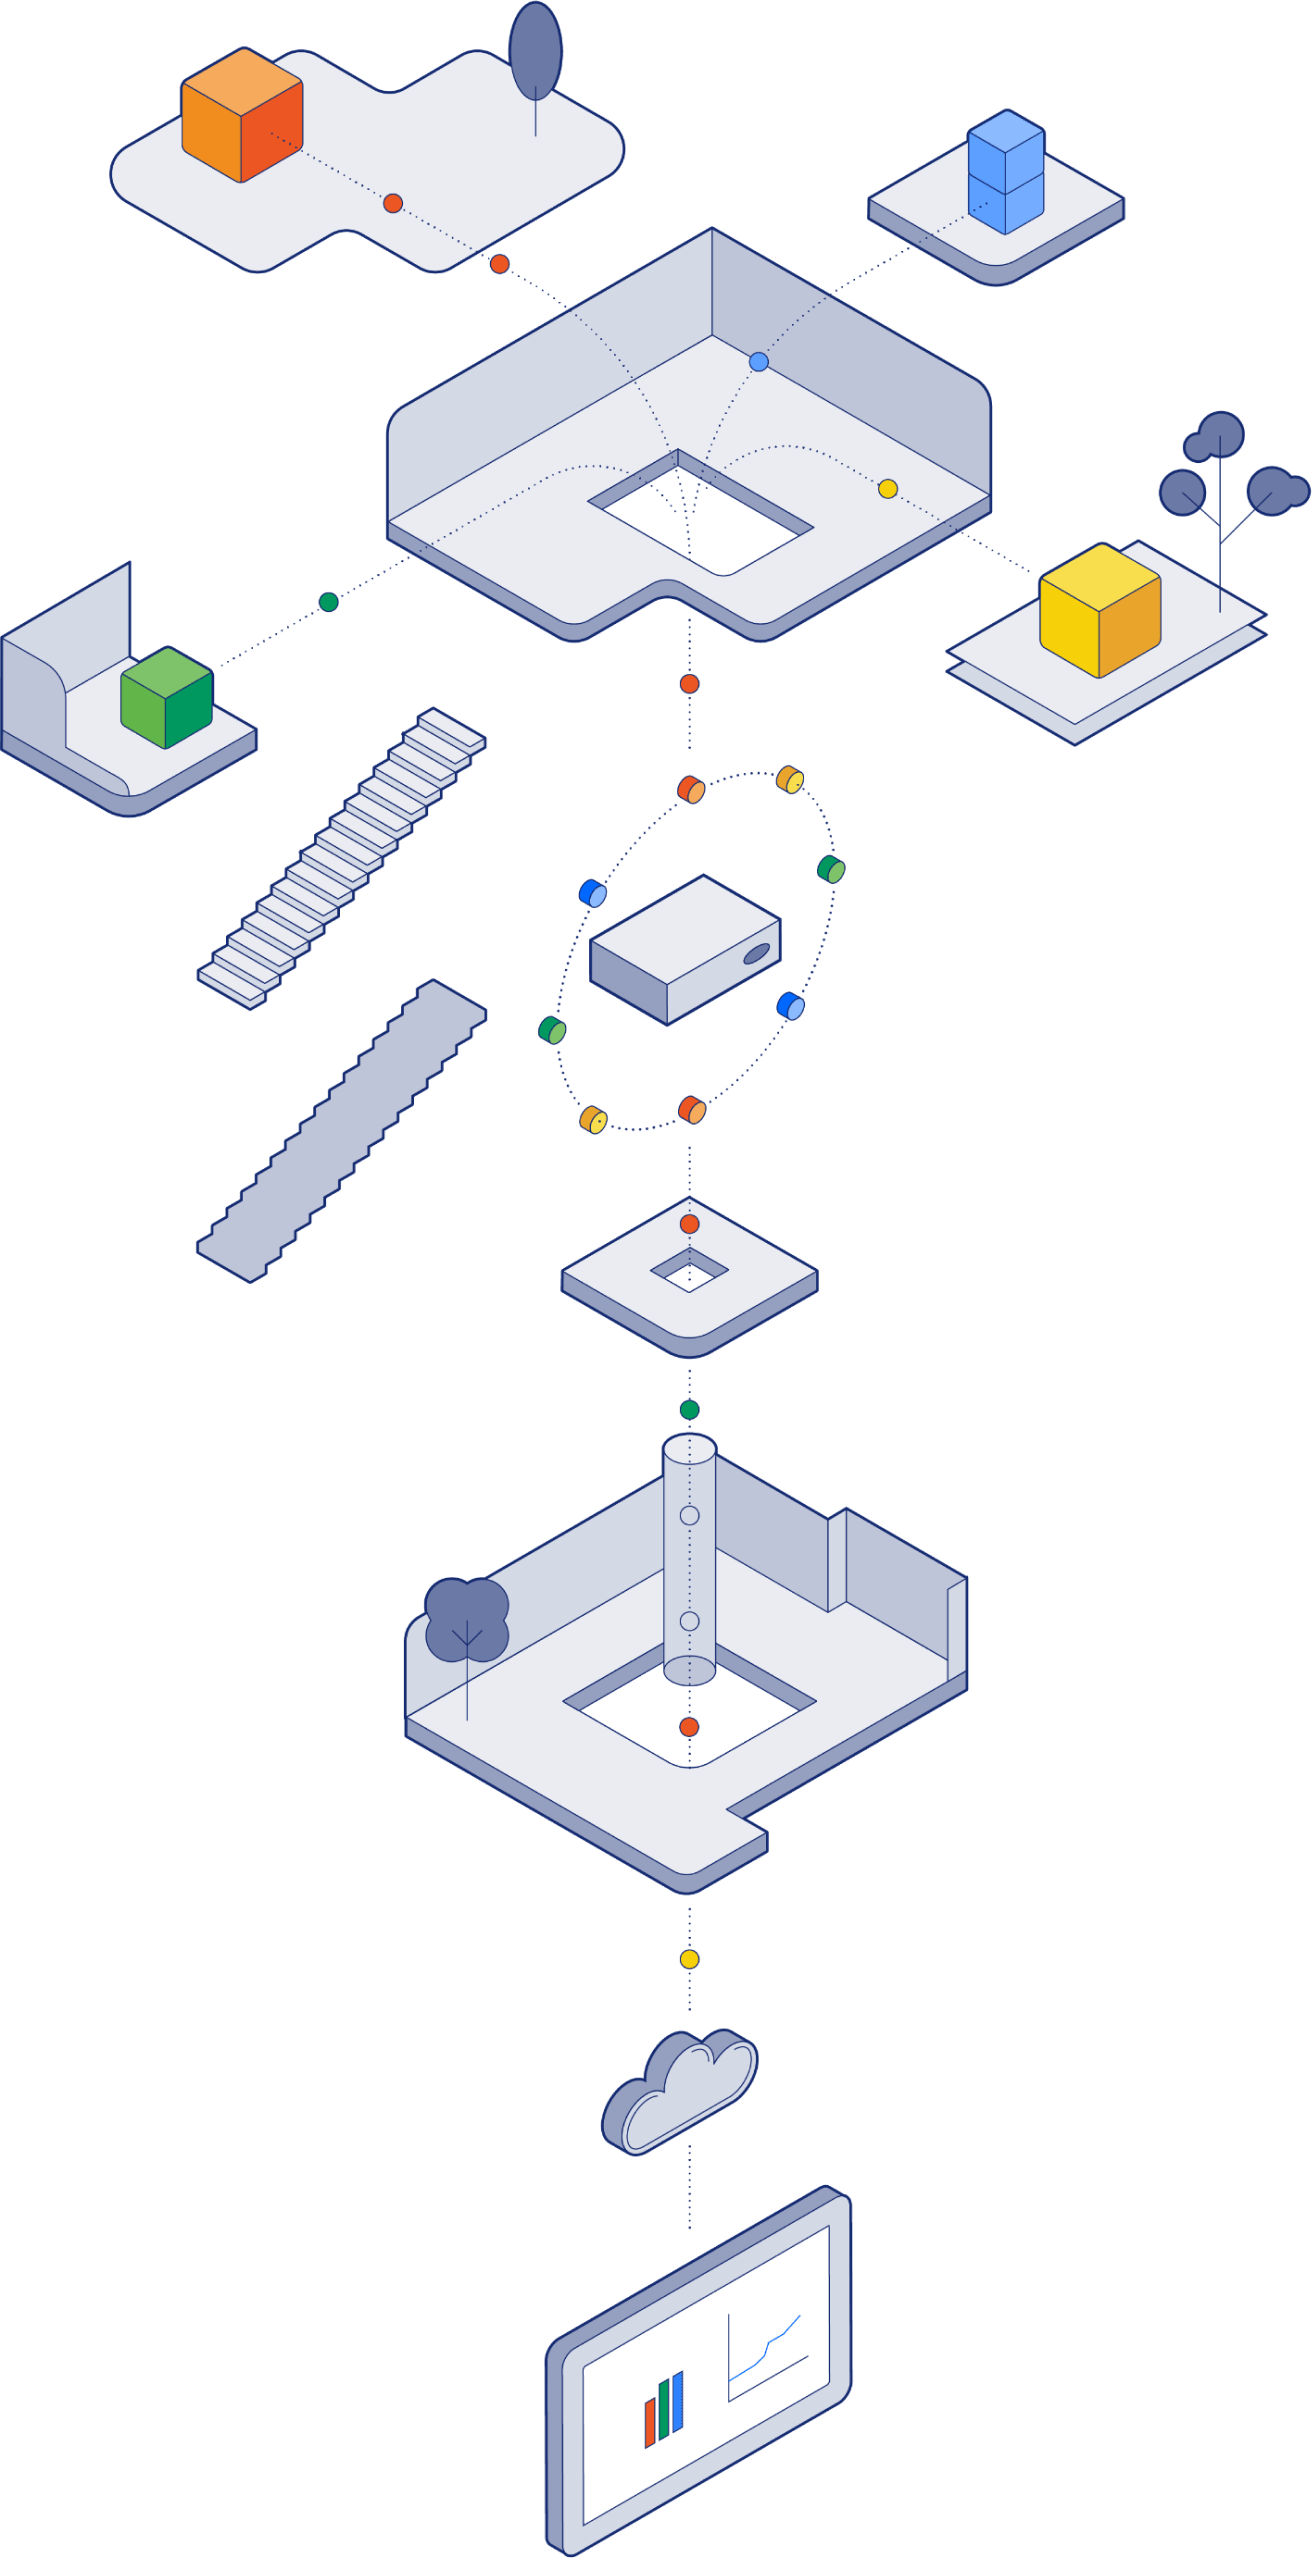 An illustration of a building with equipment and sensors